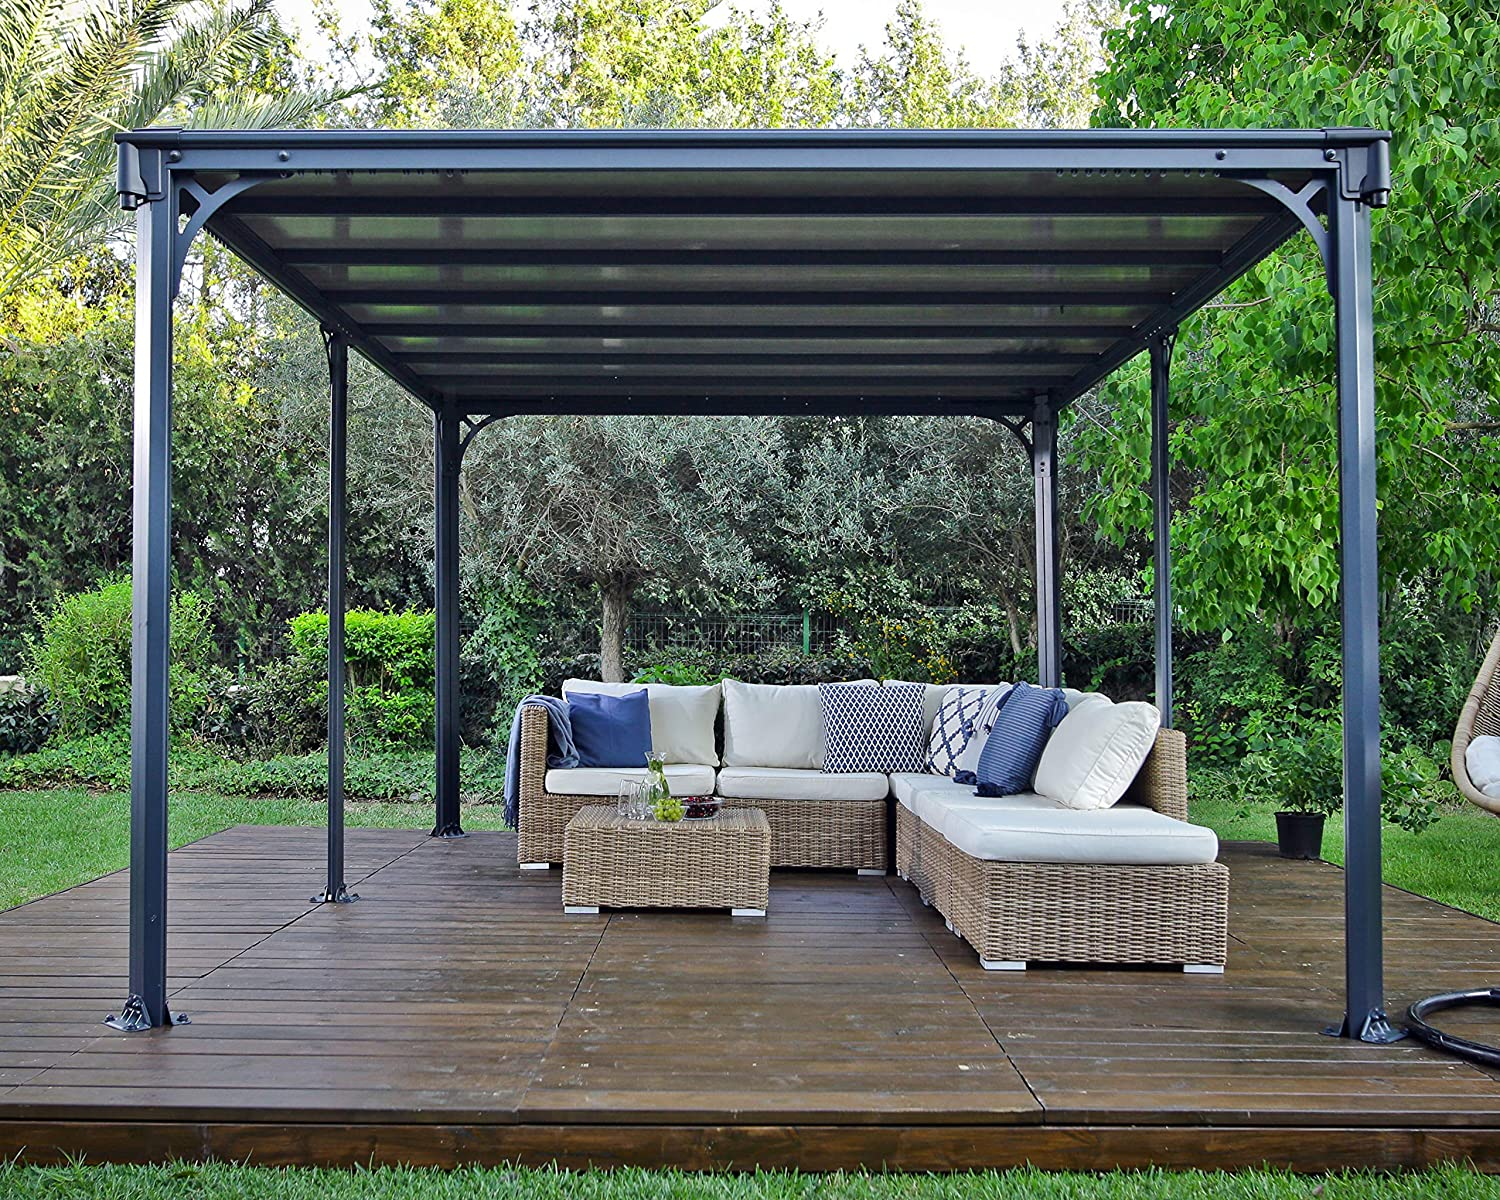 Milano Garden Gazebo., Color Gris, tamaño 426 x 309 x 225 cm, 361 x 65 x 16centimeters: Amazon.es: Jardín